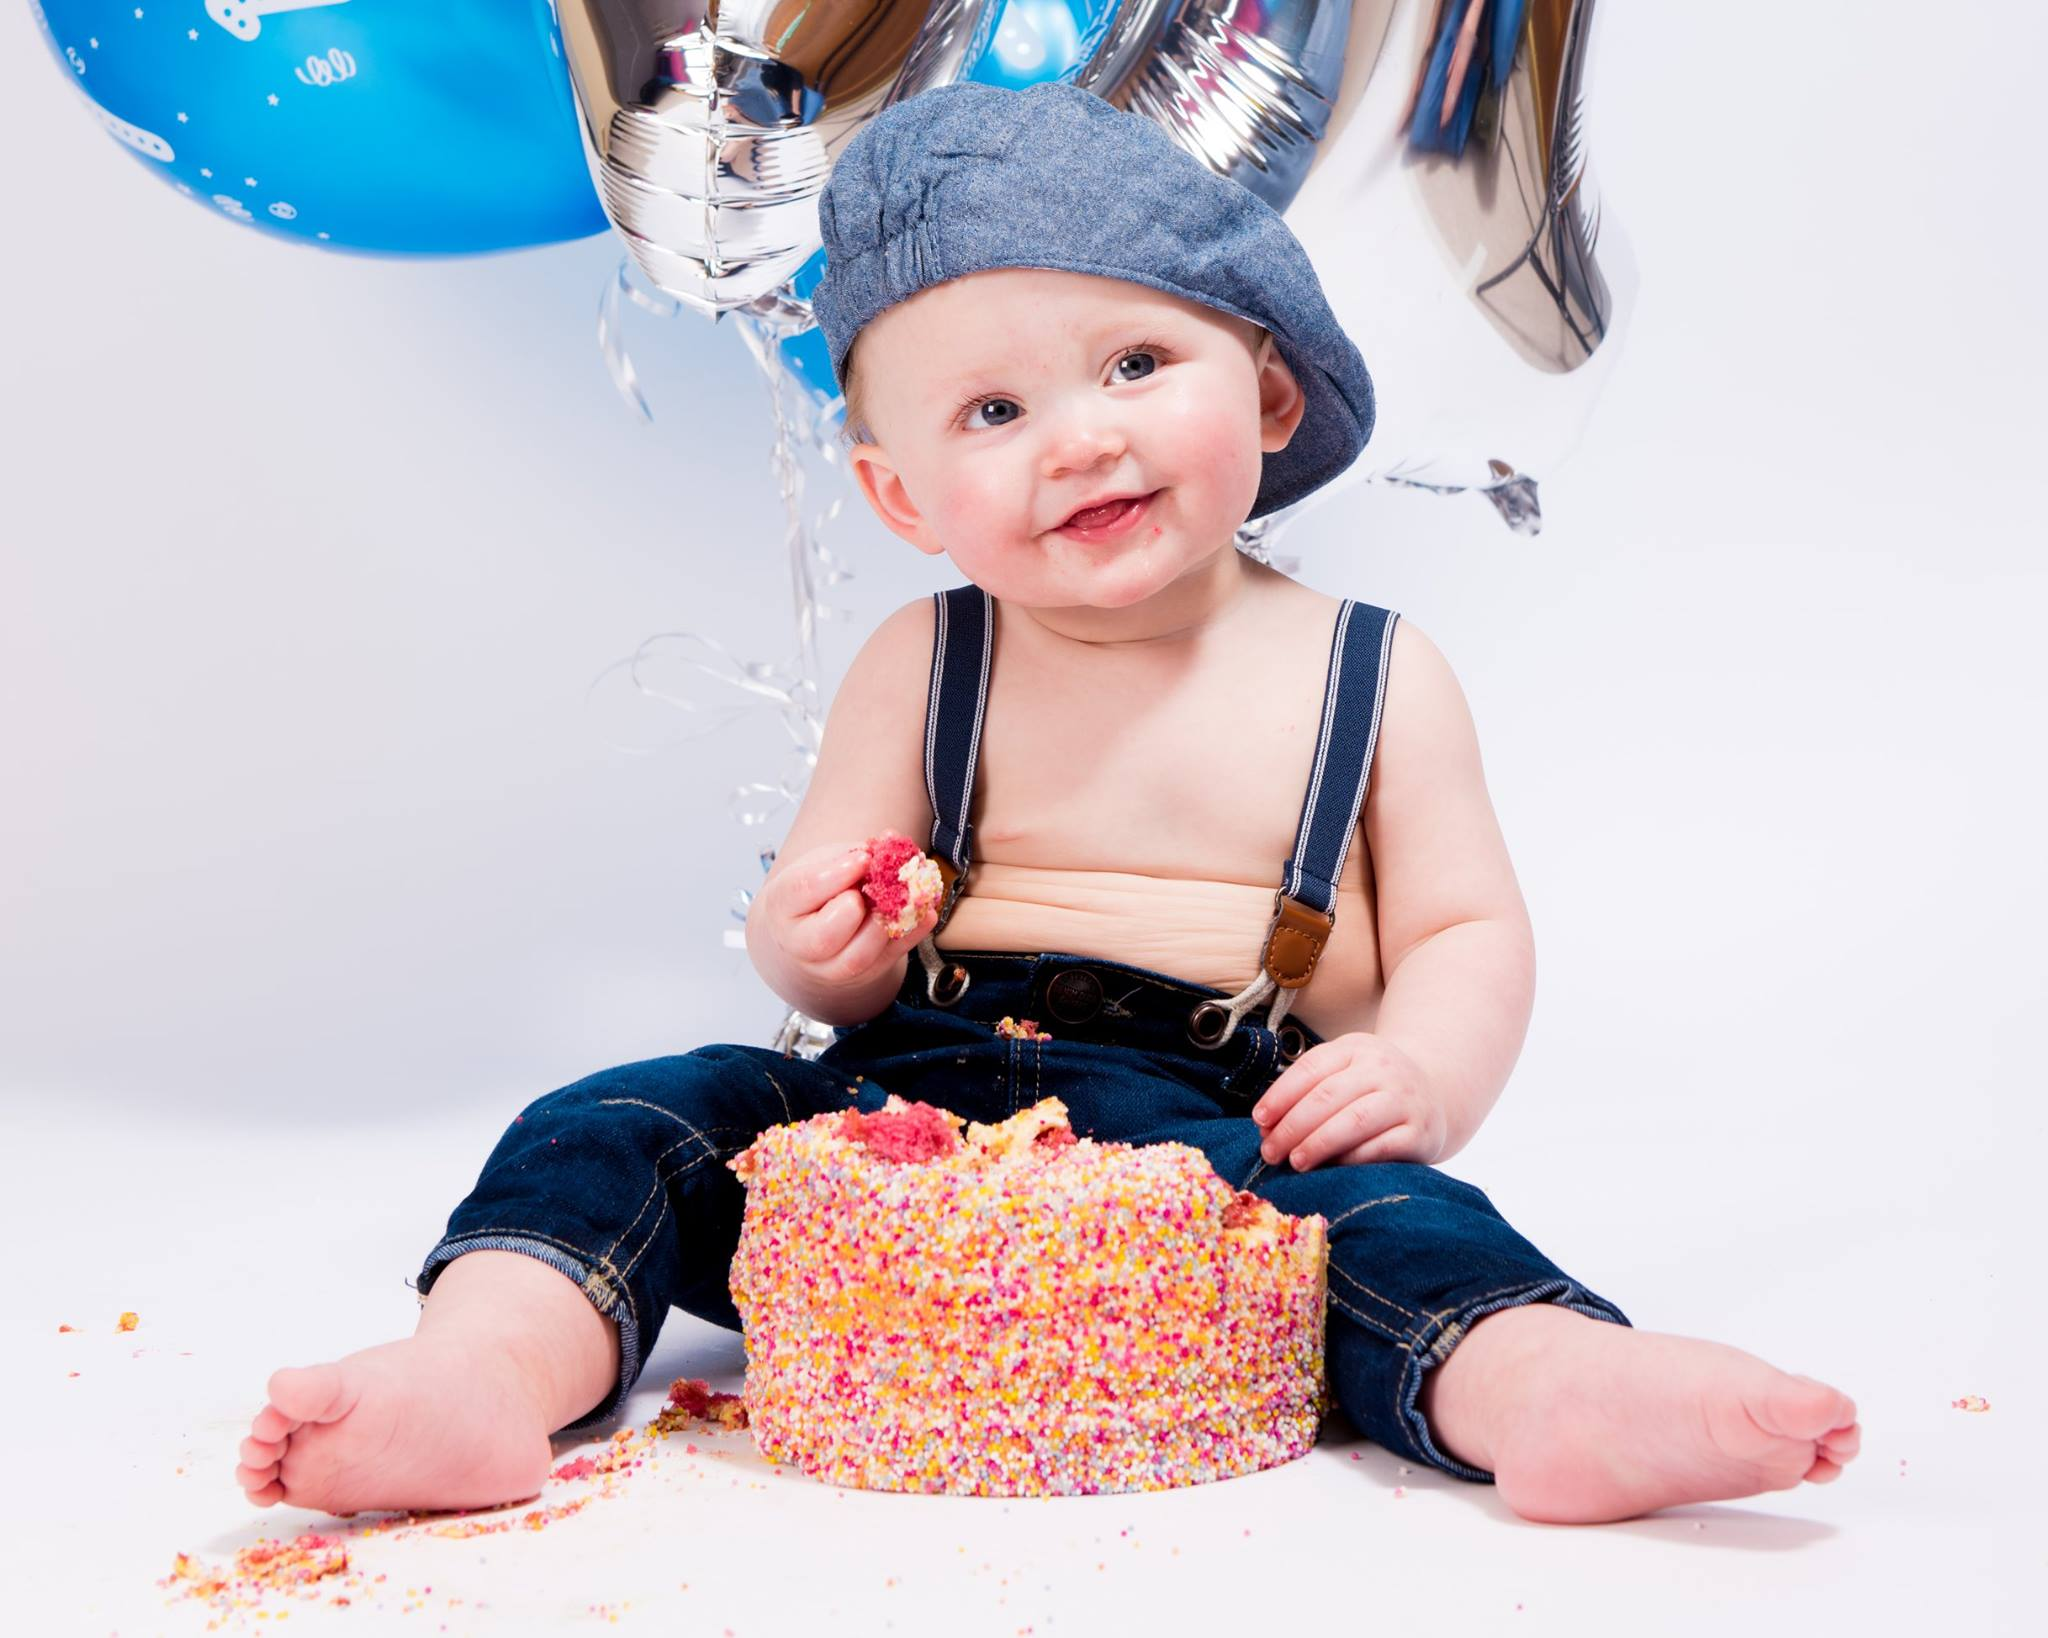 CAKE SMASH/FIRST BIRTHDAY PHOTOSHOOT - Up to 1 hour in our studio. Three 8x6 inch glossy prints. (Your choice)Price just £155 for the whole package £25 booking fee, £130 on studio visit.Upgrade to Six photo's for extra £30.